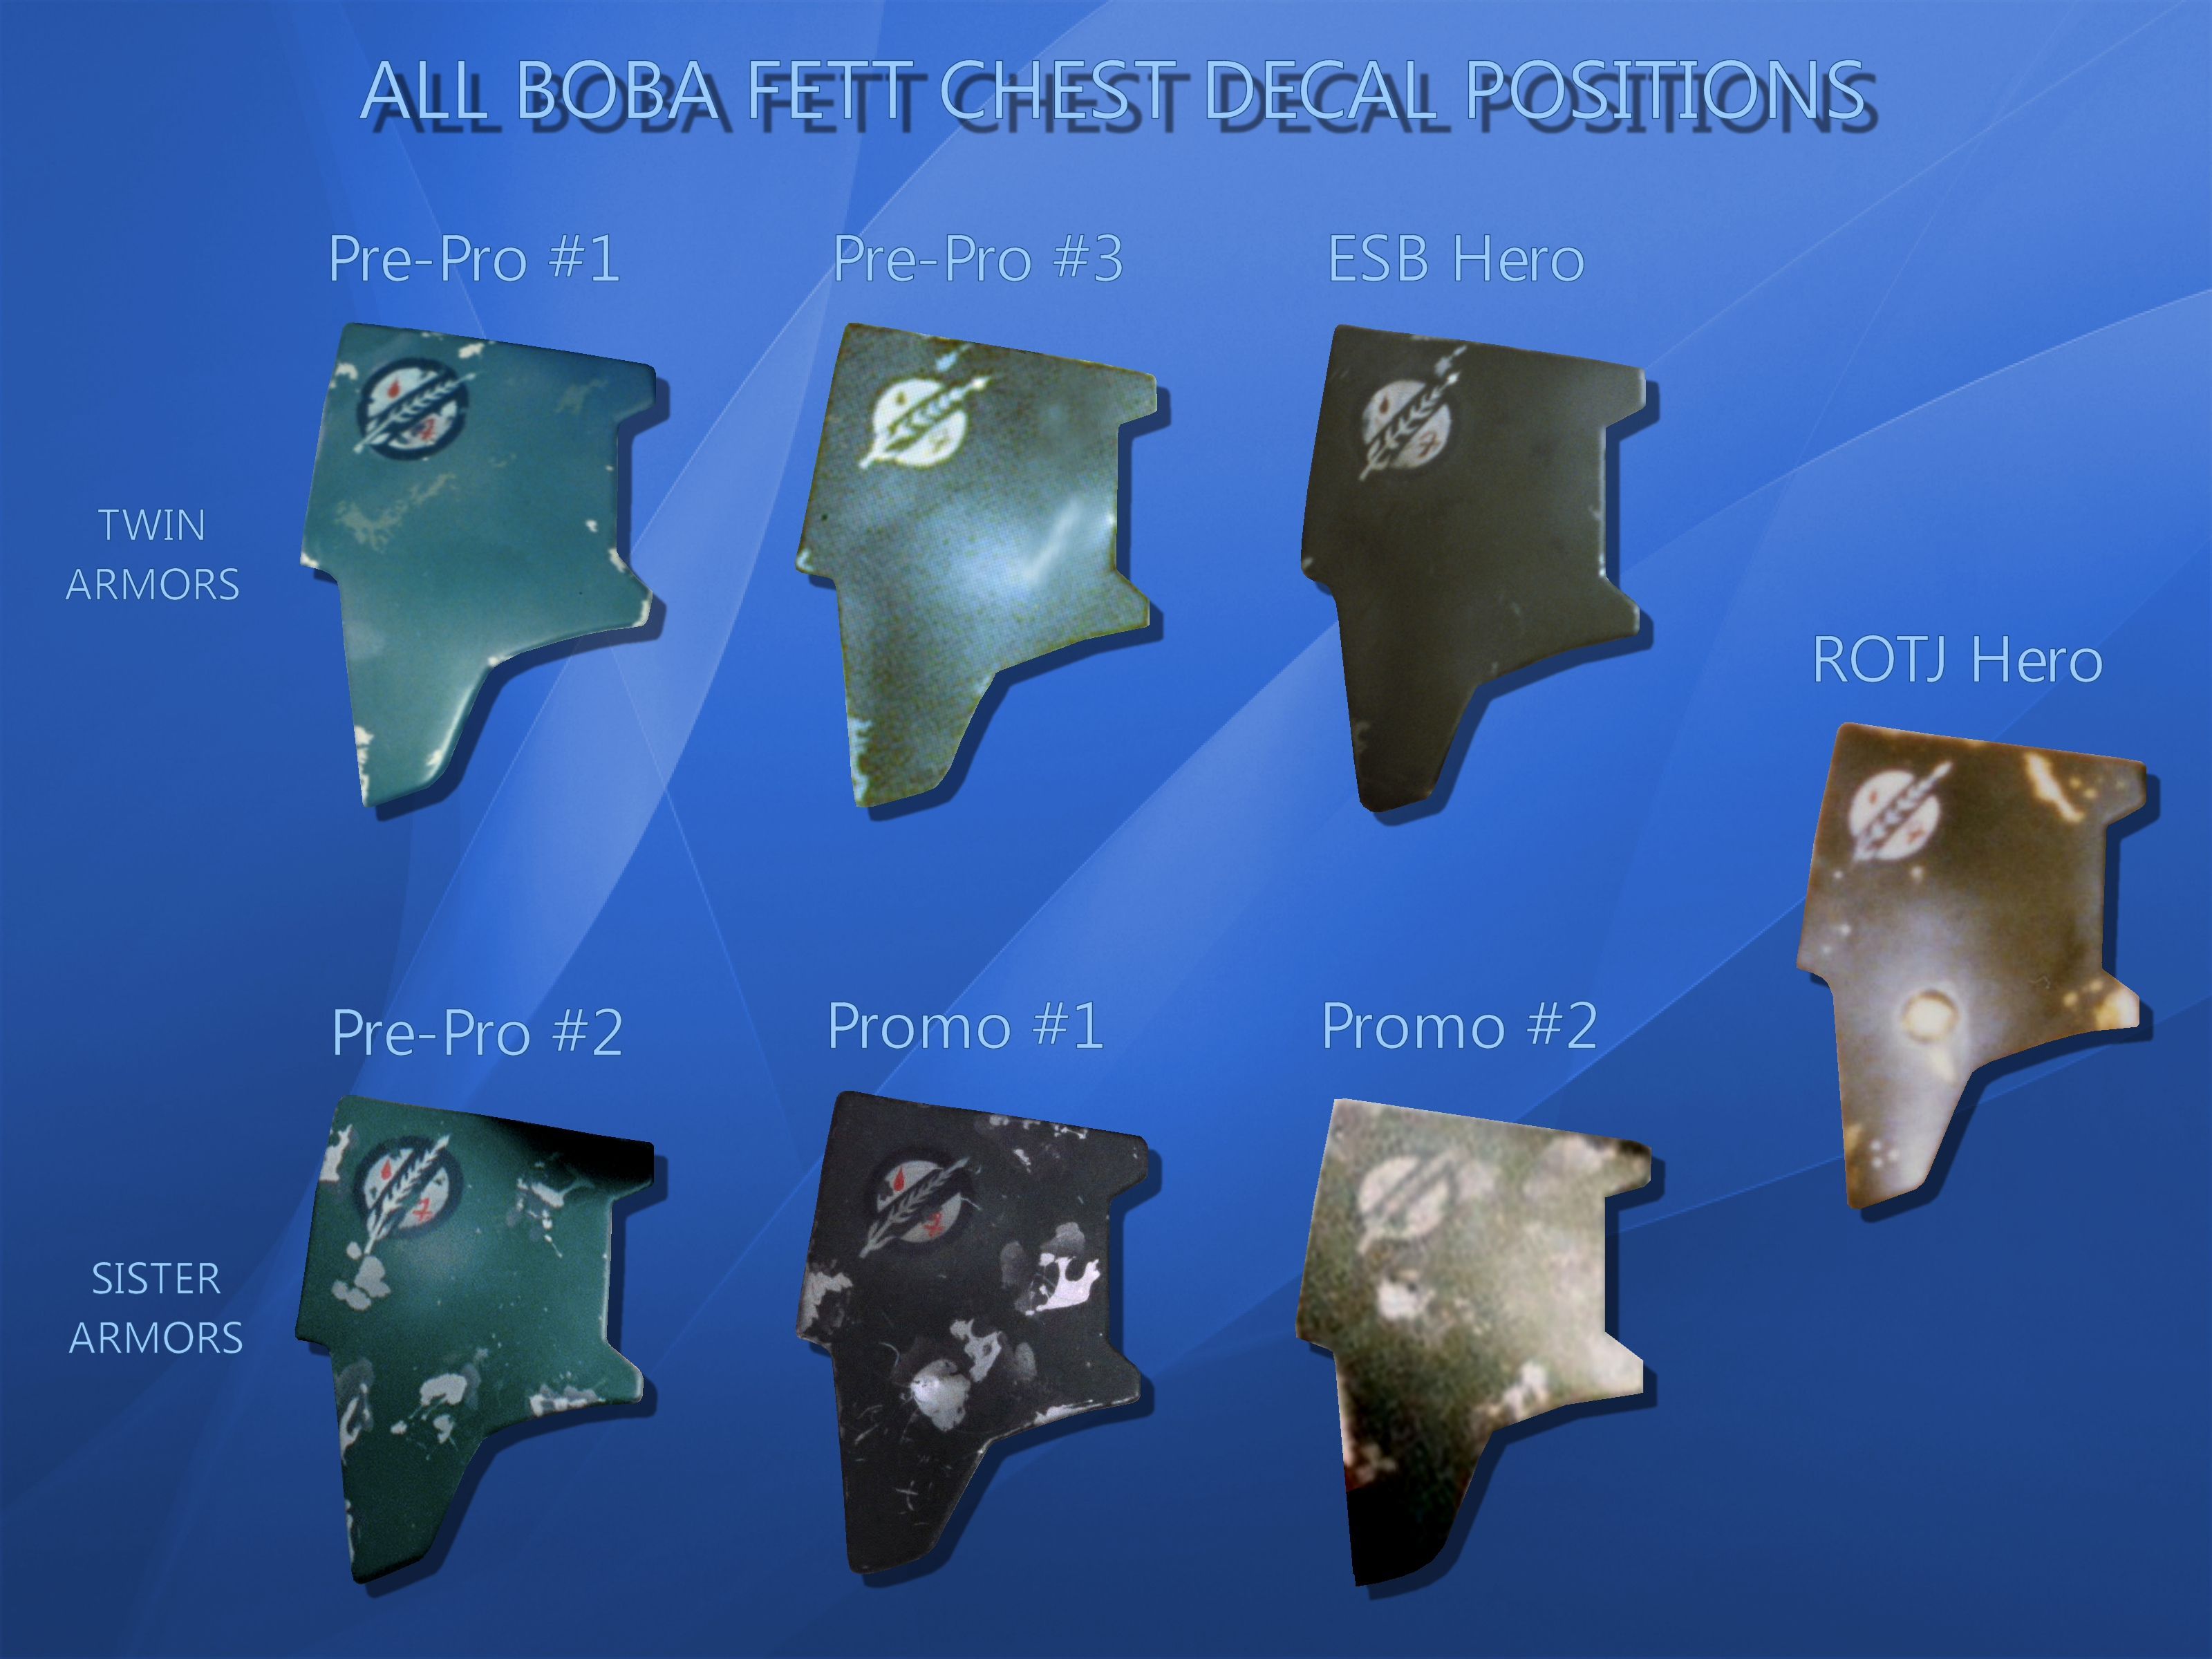 All Boba Fett Right Chests.jpg